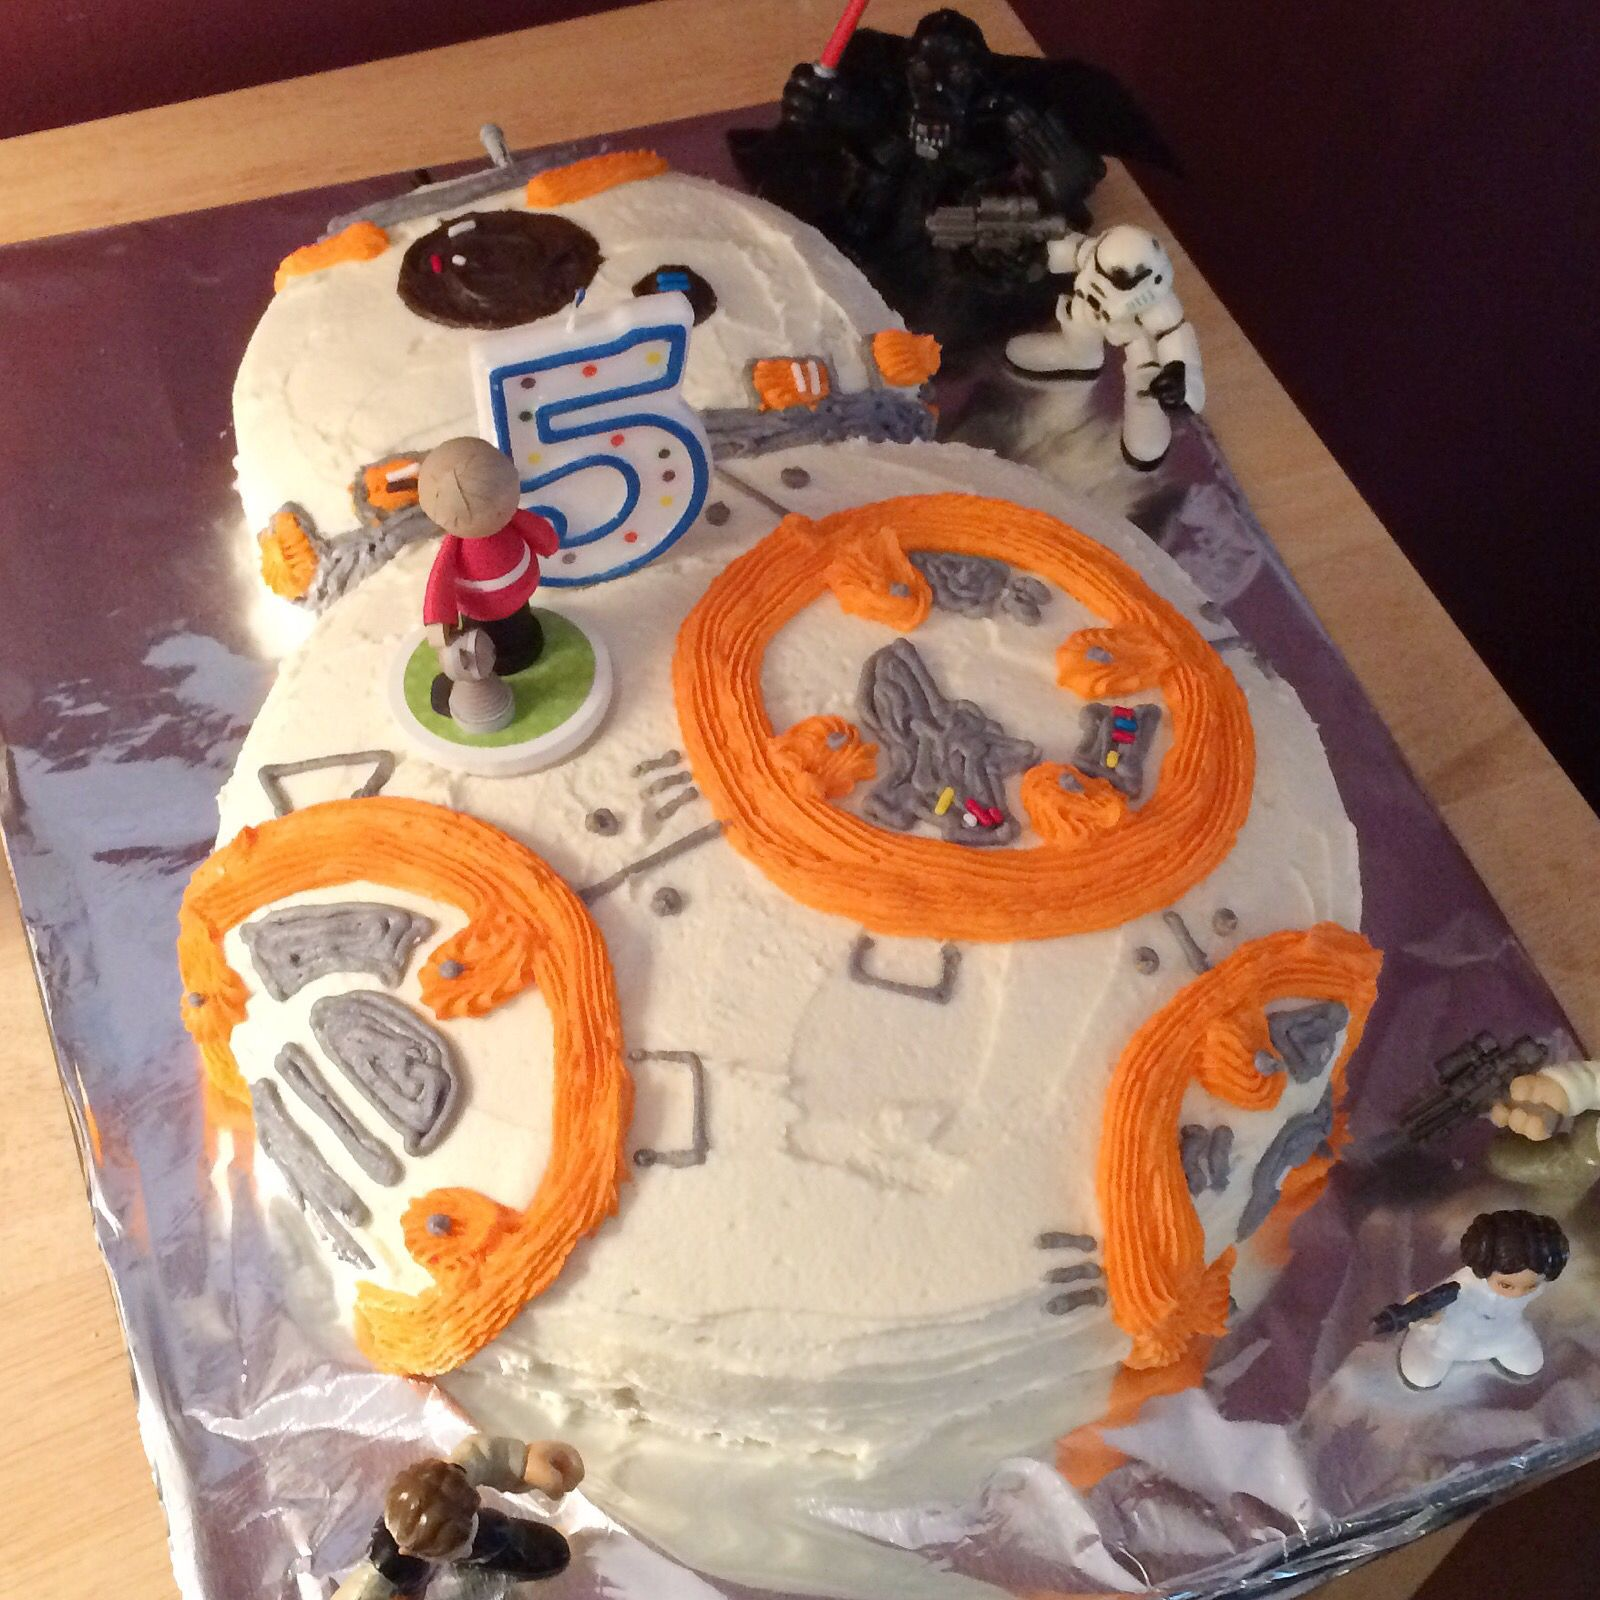 BB8 Star Wars birthday cake decorated with buttercream frosting